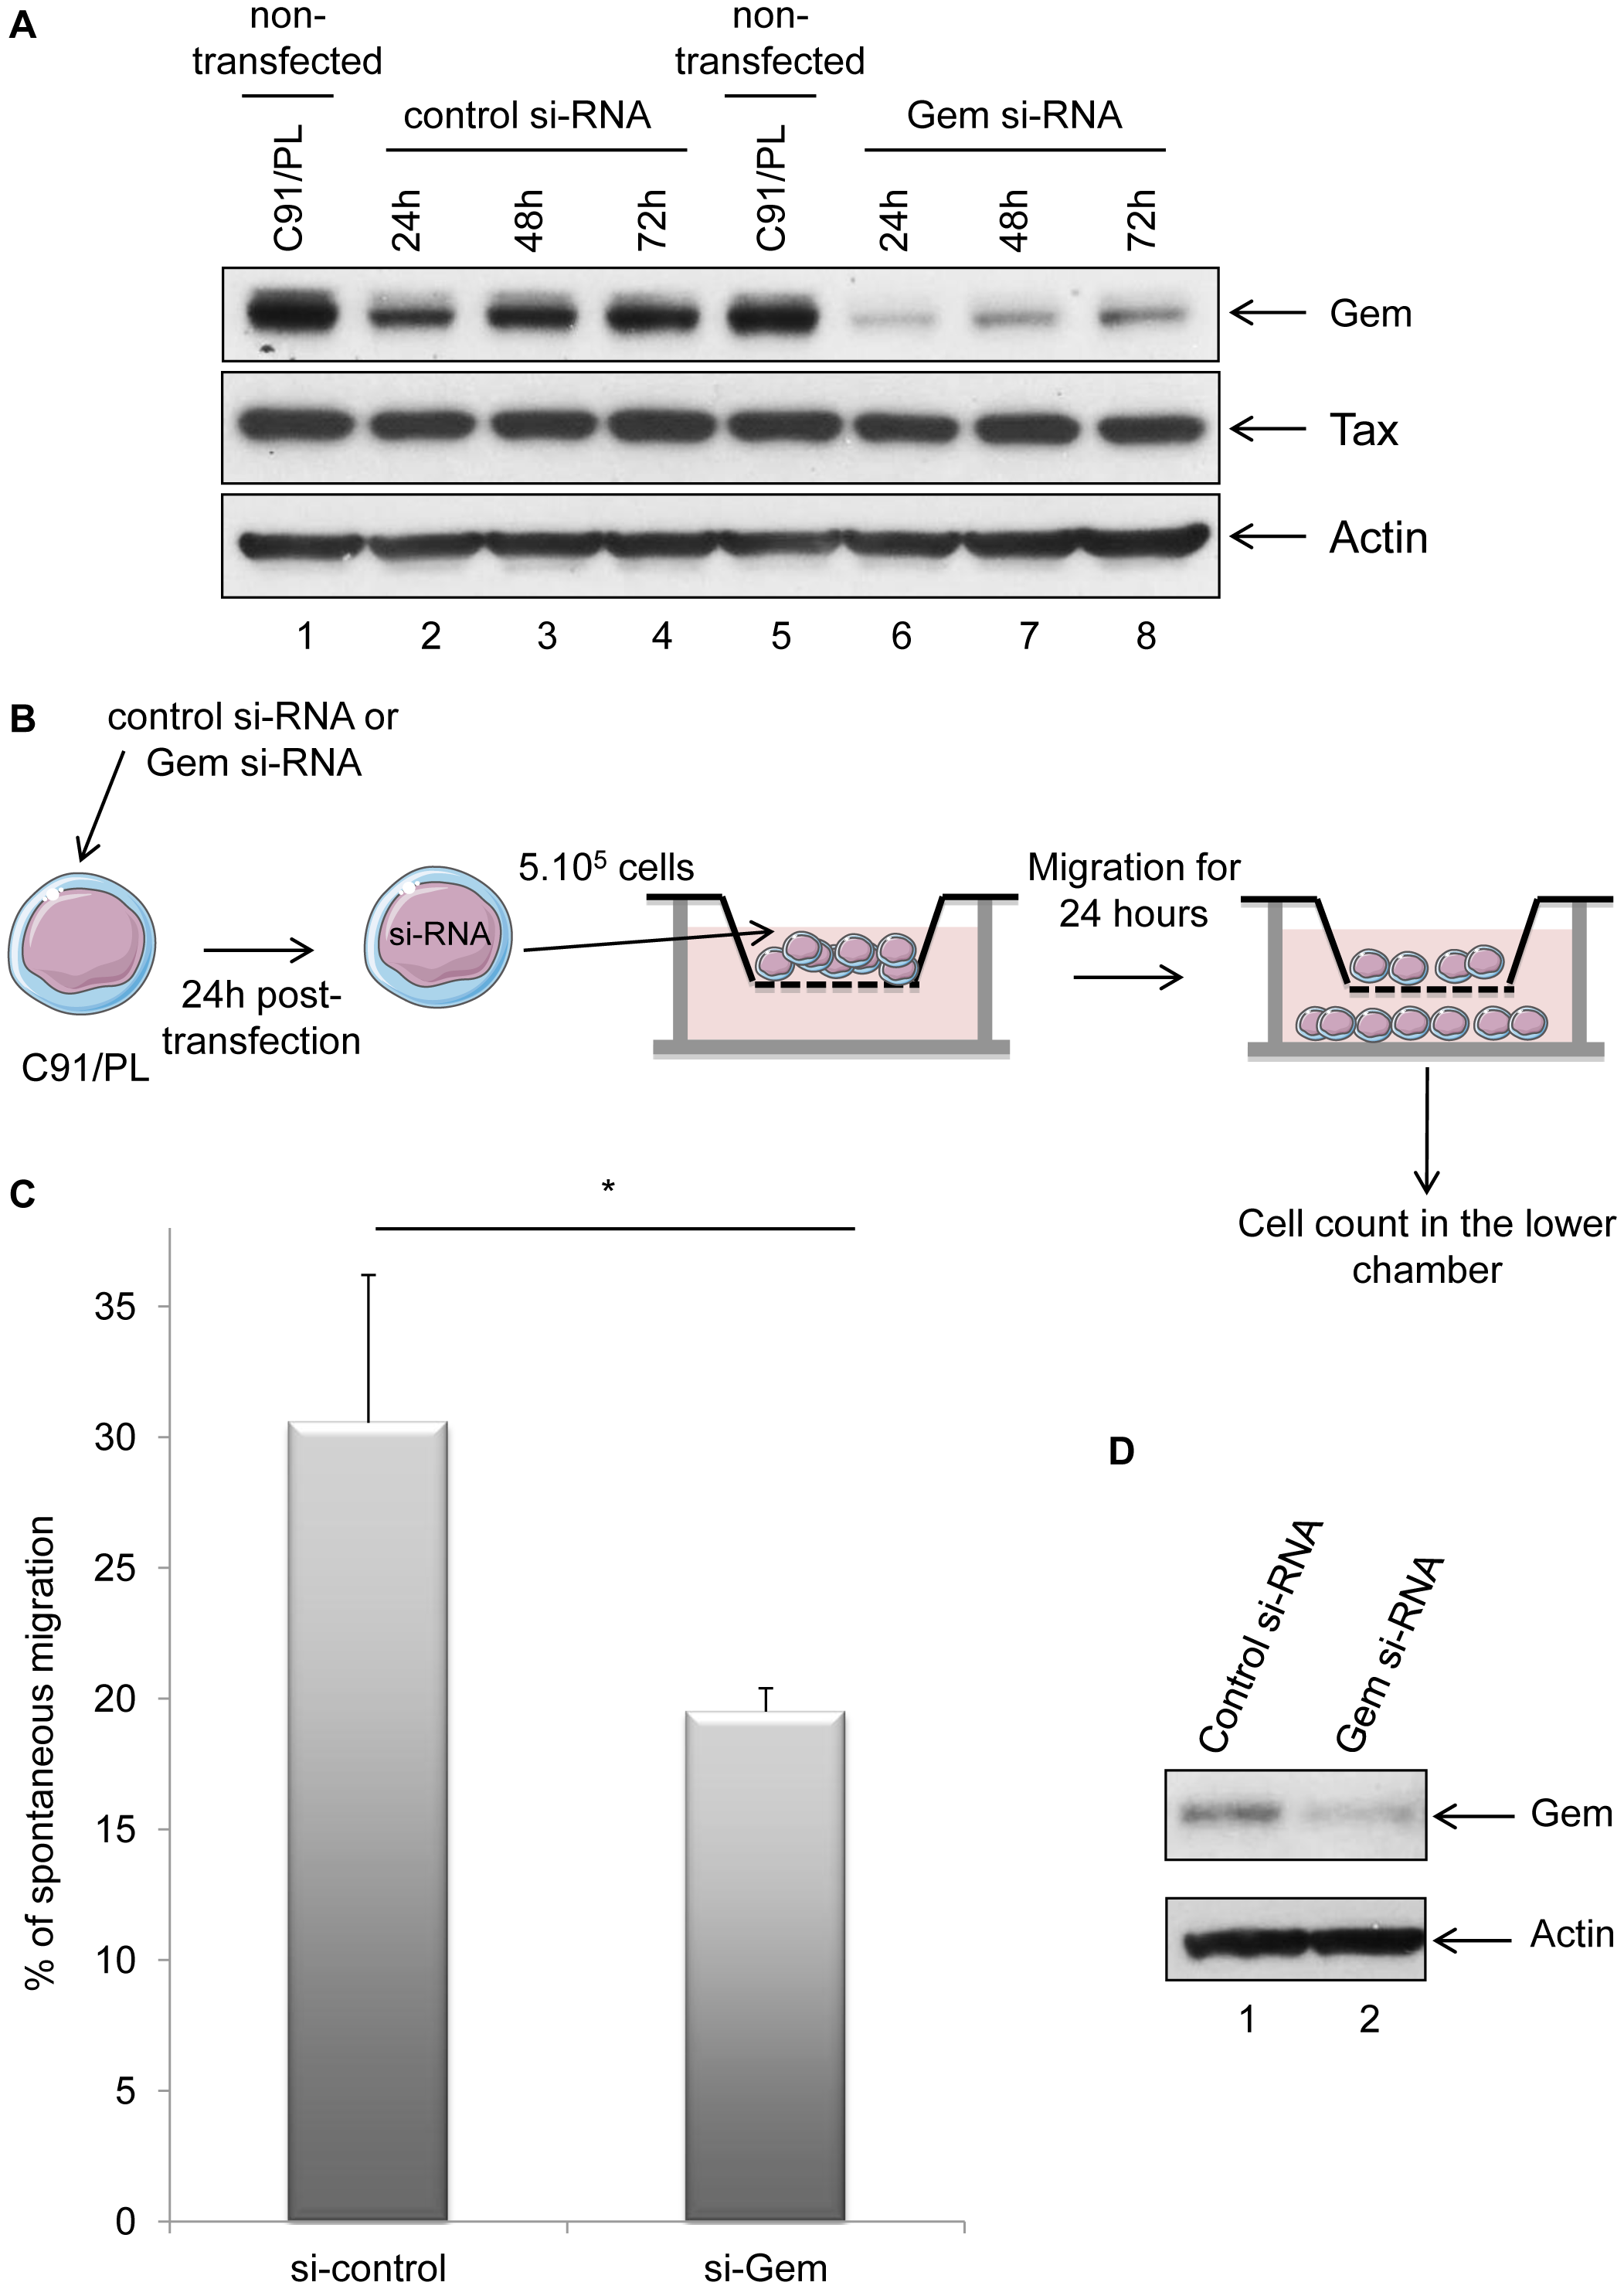 Gem is involved in HTLV-1-infected cell migration.